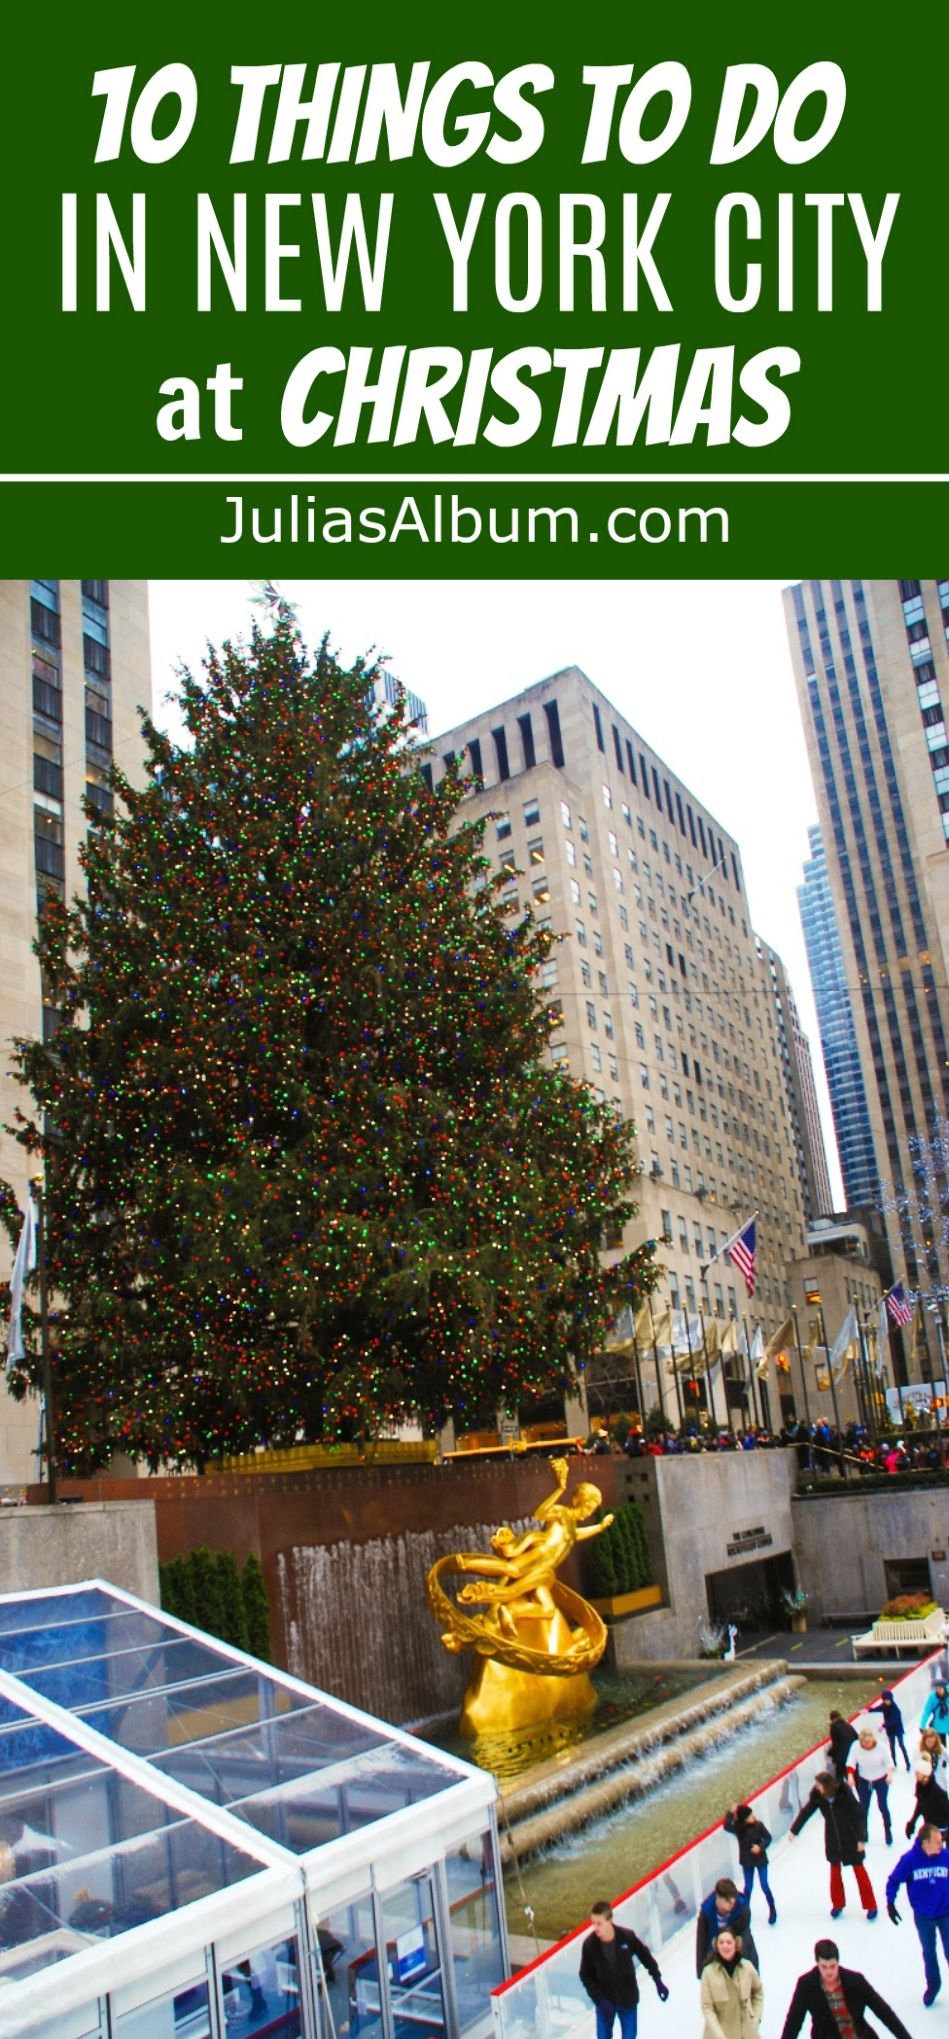 10 Things to do in New York City in December #Christmas #holidays #NYC   TRAVEL LOVE   Nyc in ...